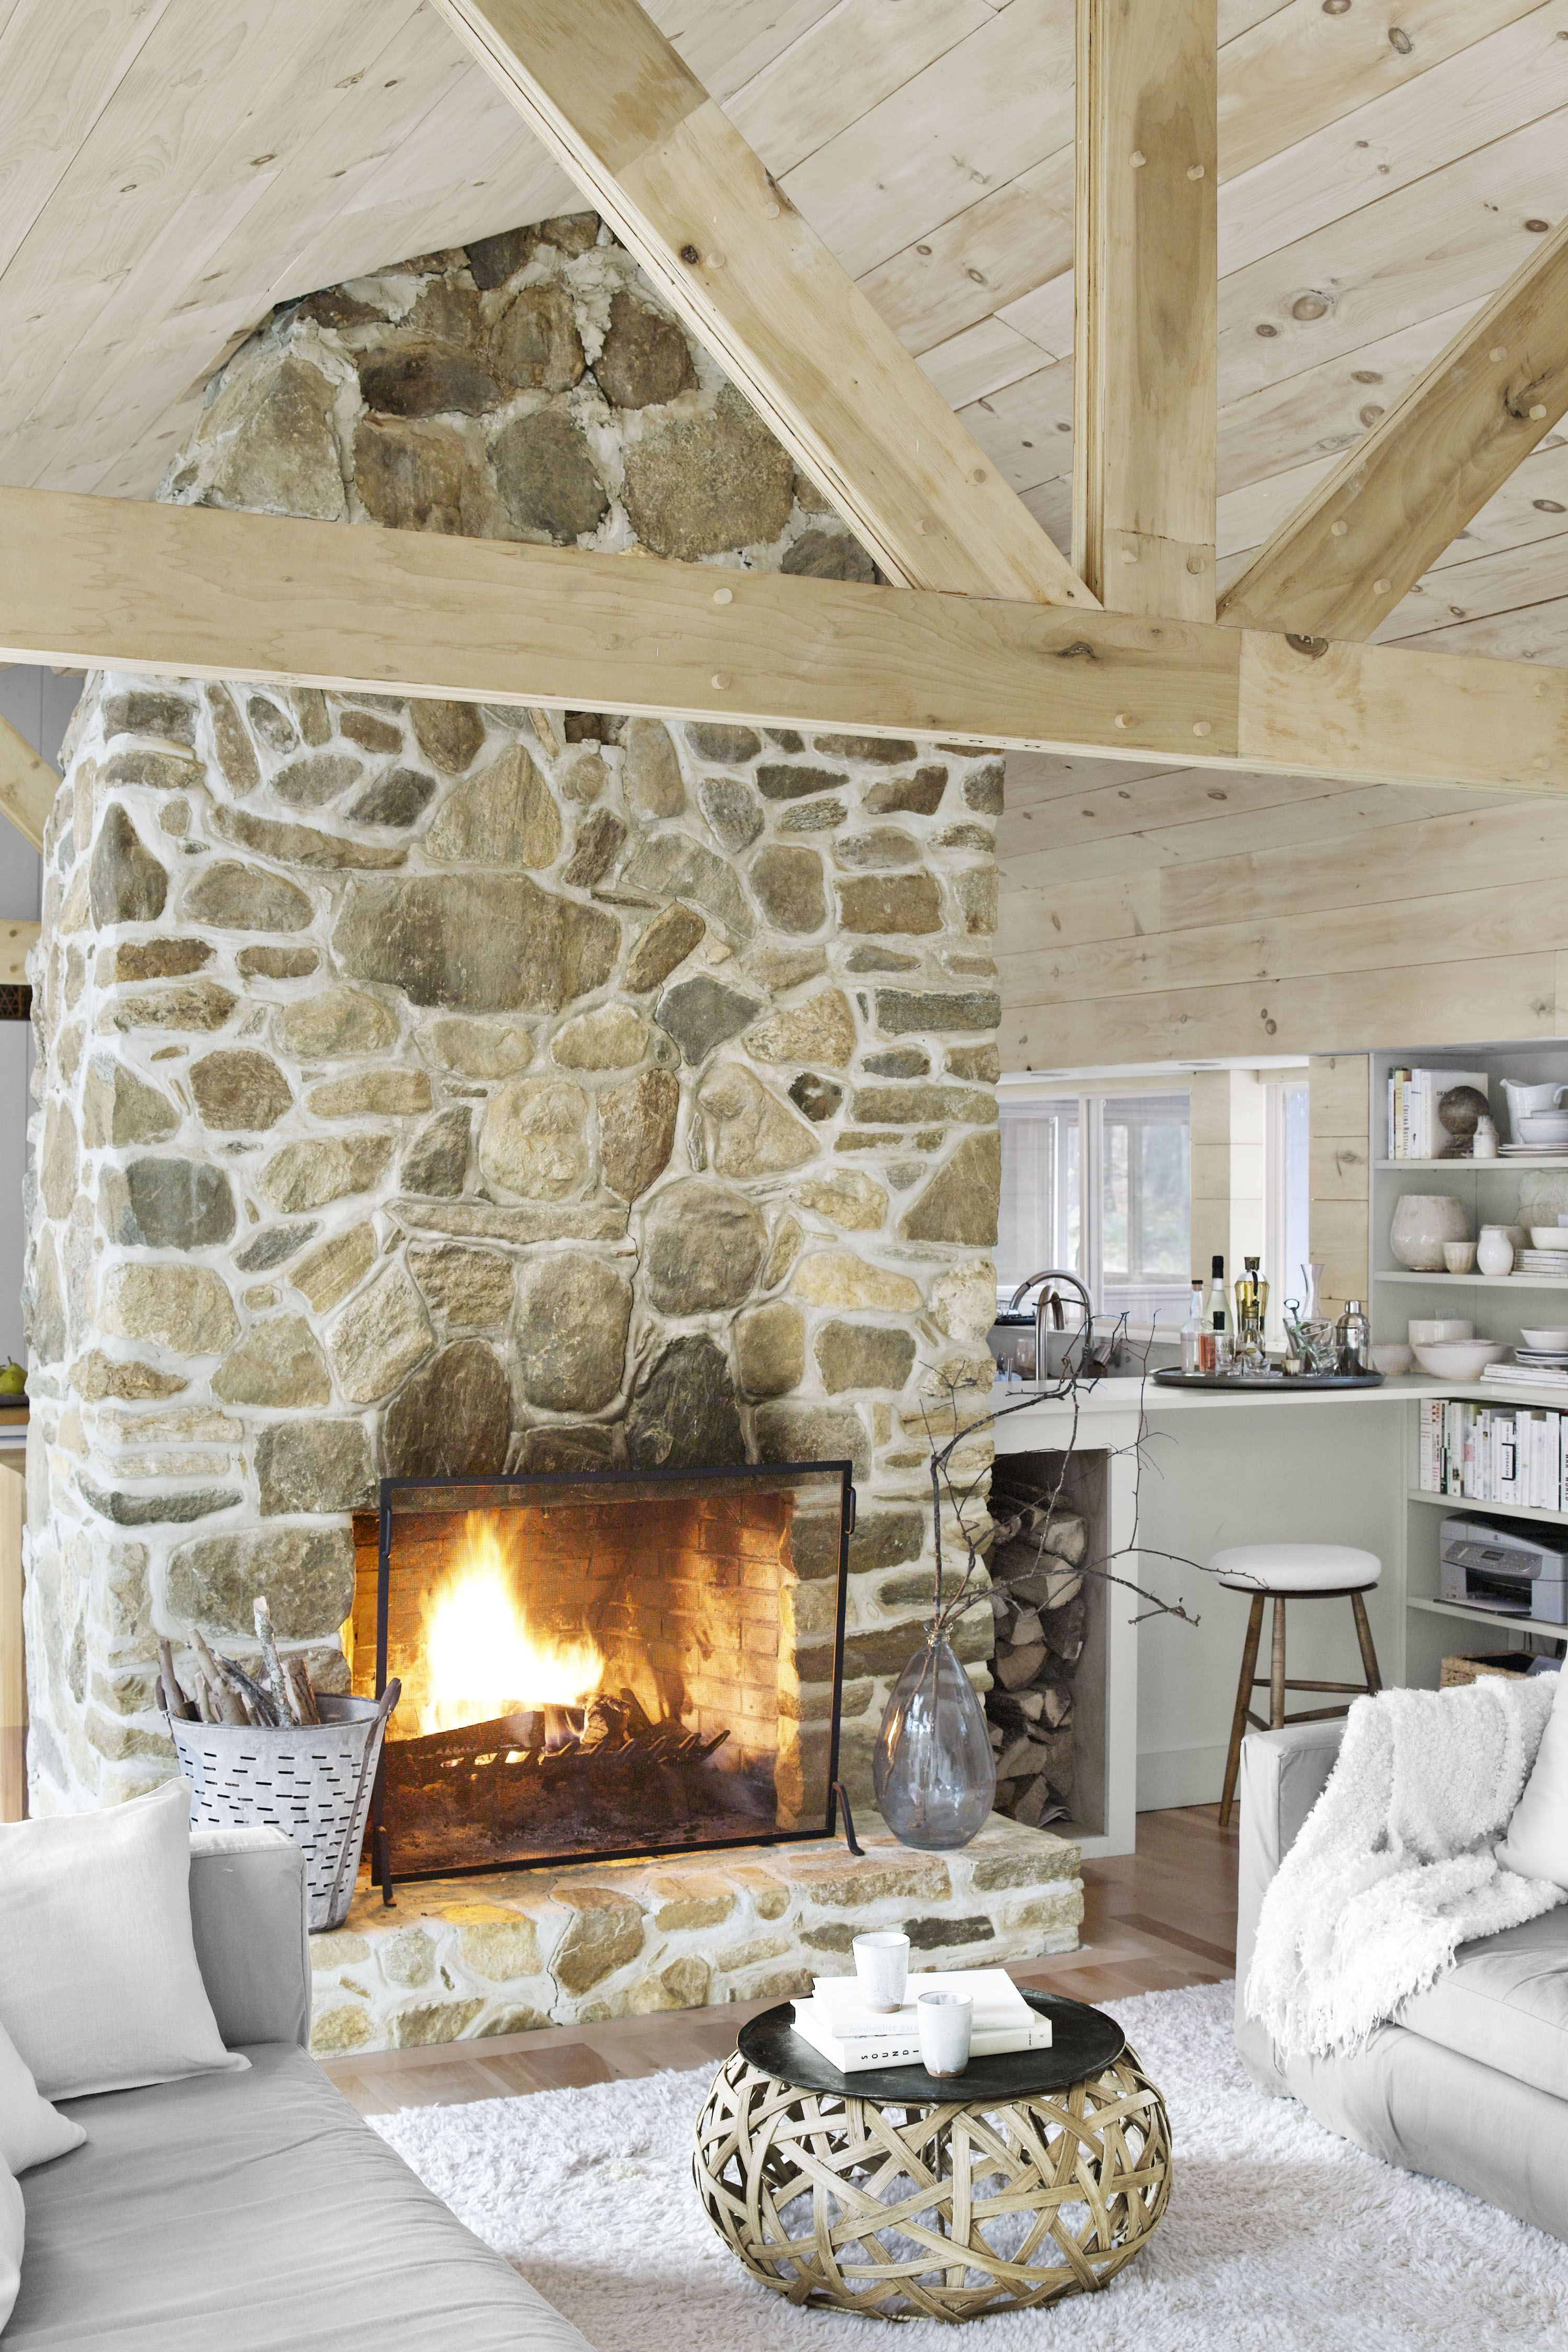 24 Modern Rustic Decor Ideas  Modern Rustic Room Inspiration for Bedrooms Living Rooms and